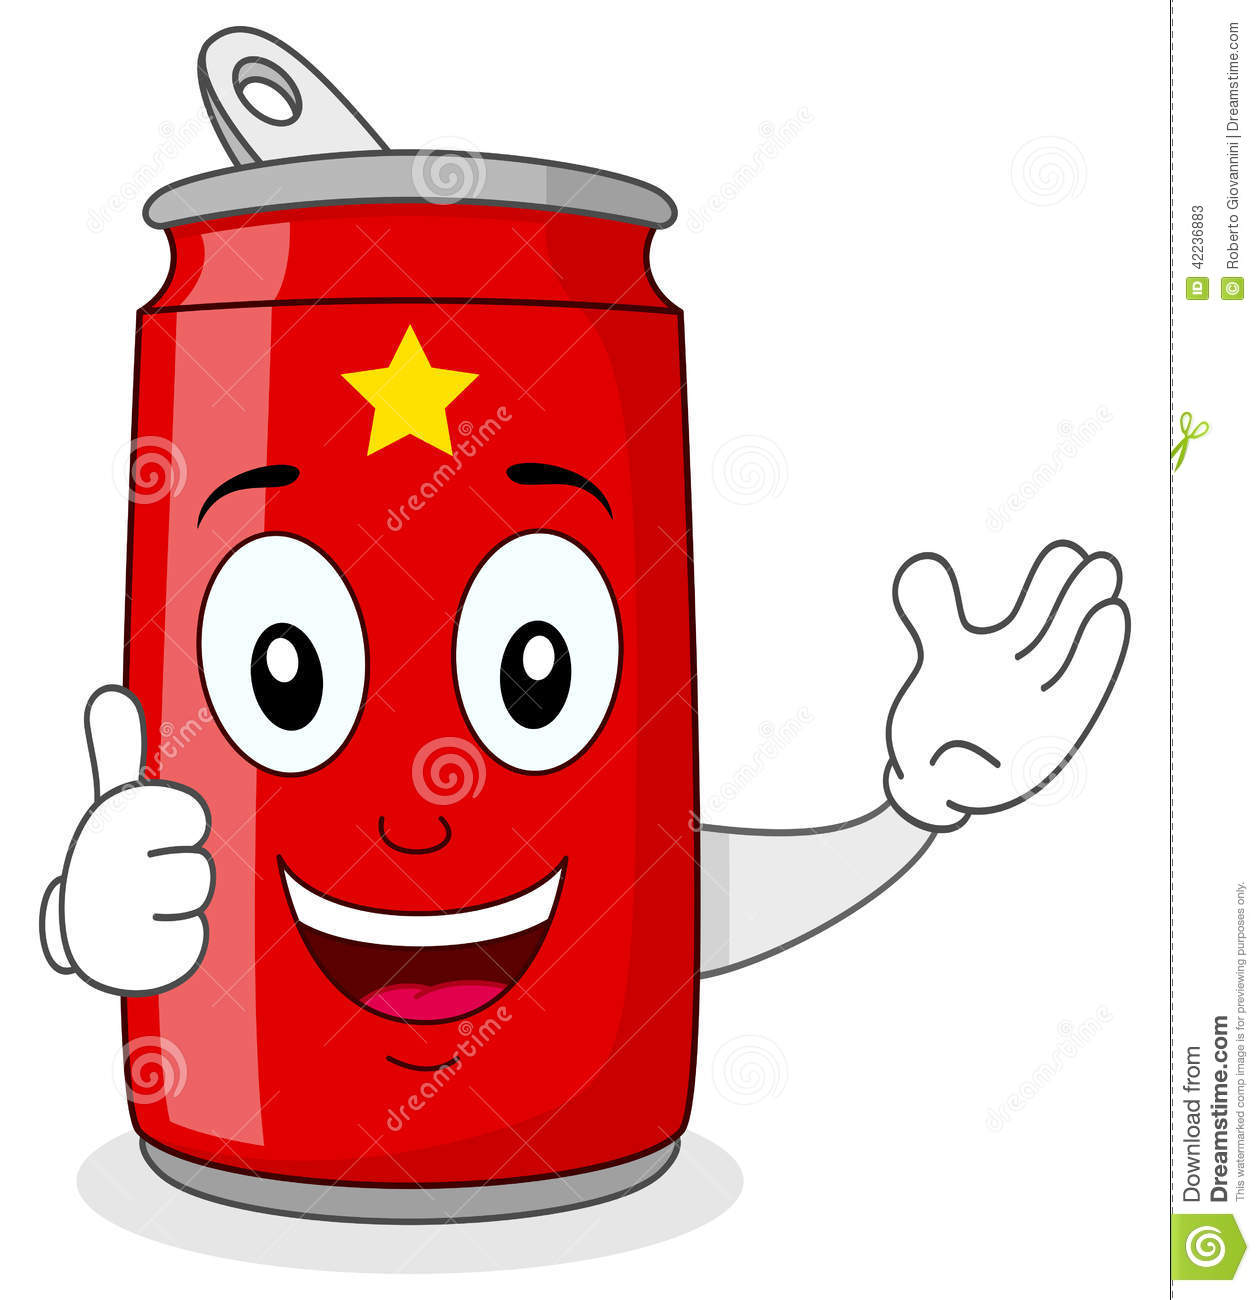 Beverage can clipart - Clipground